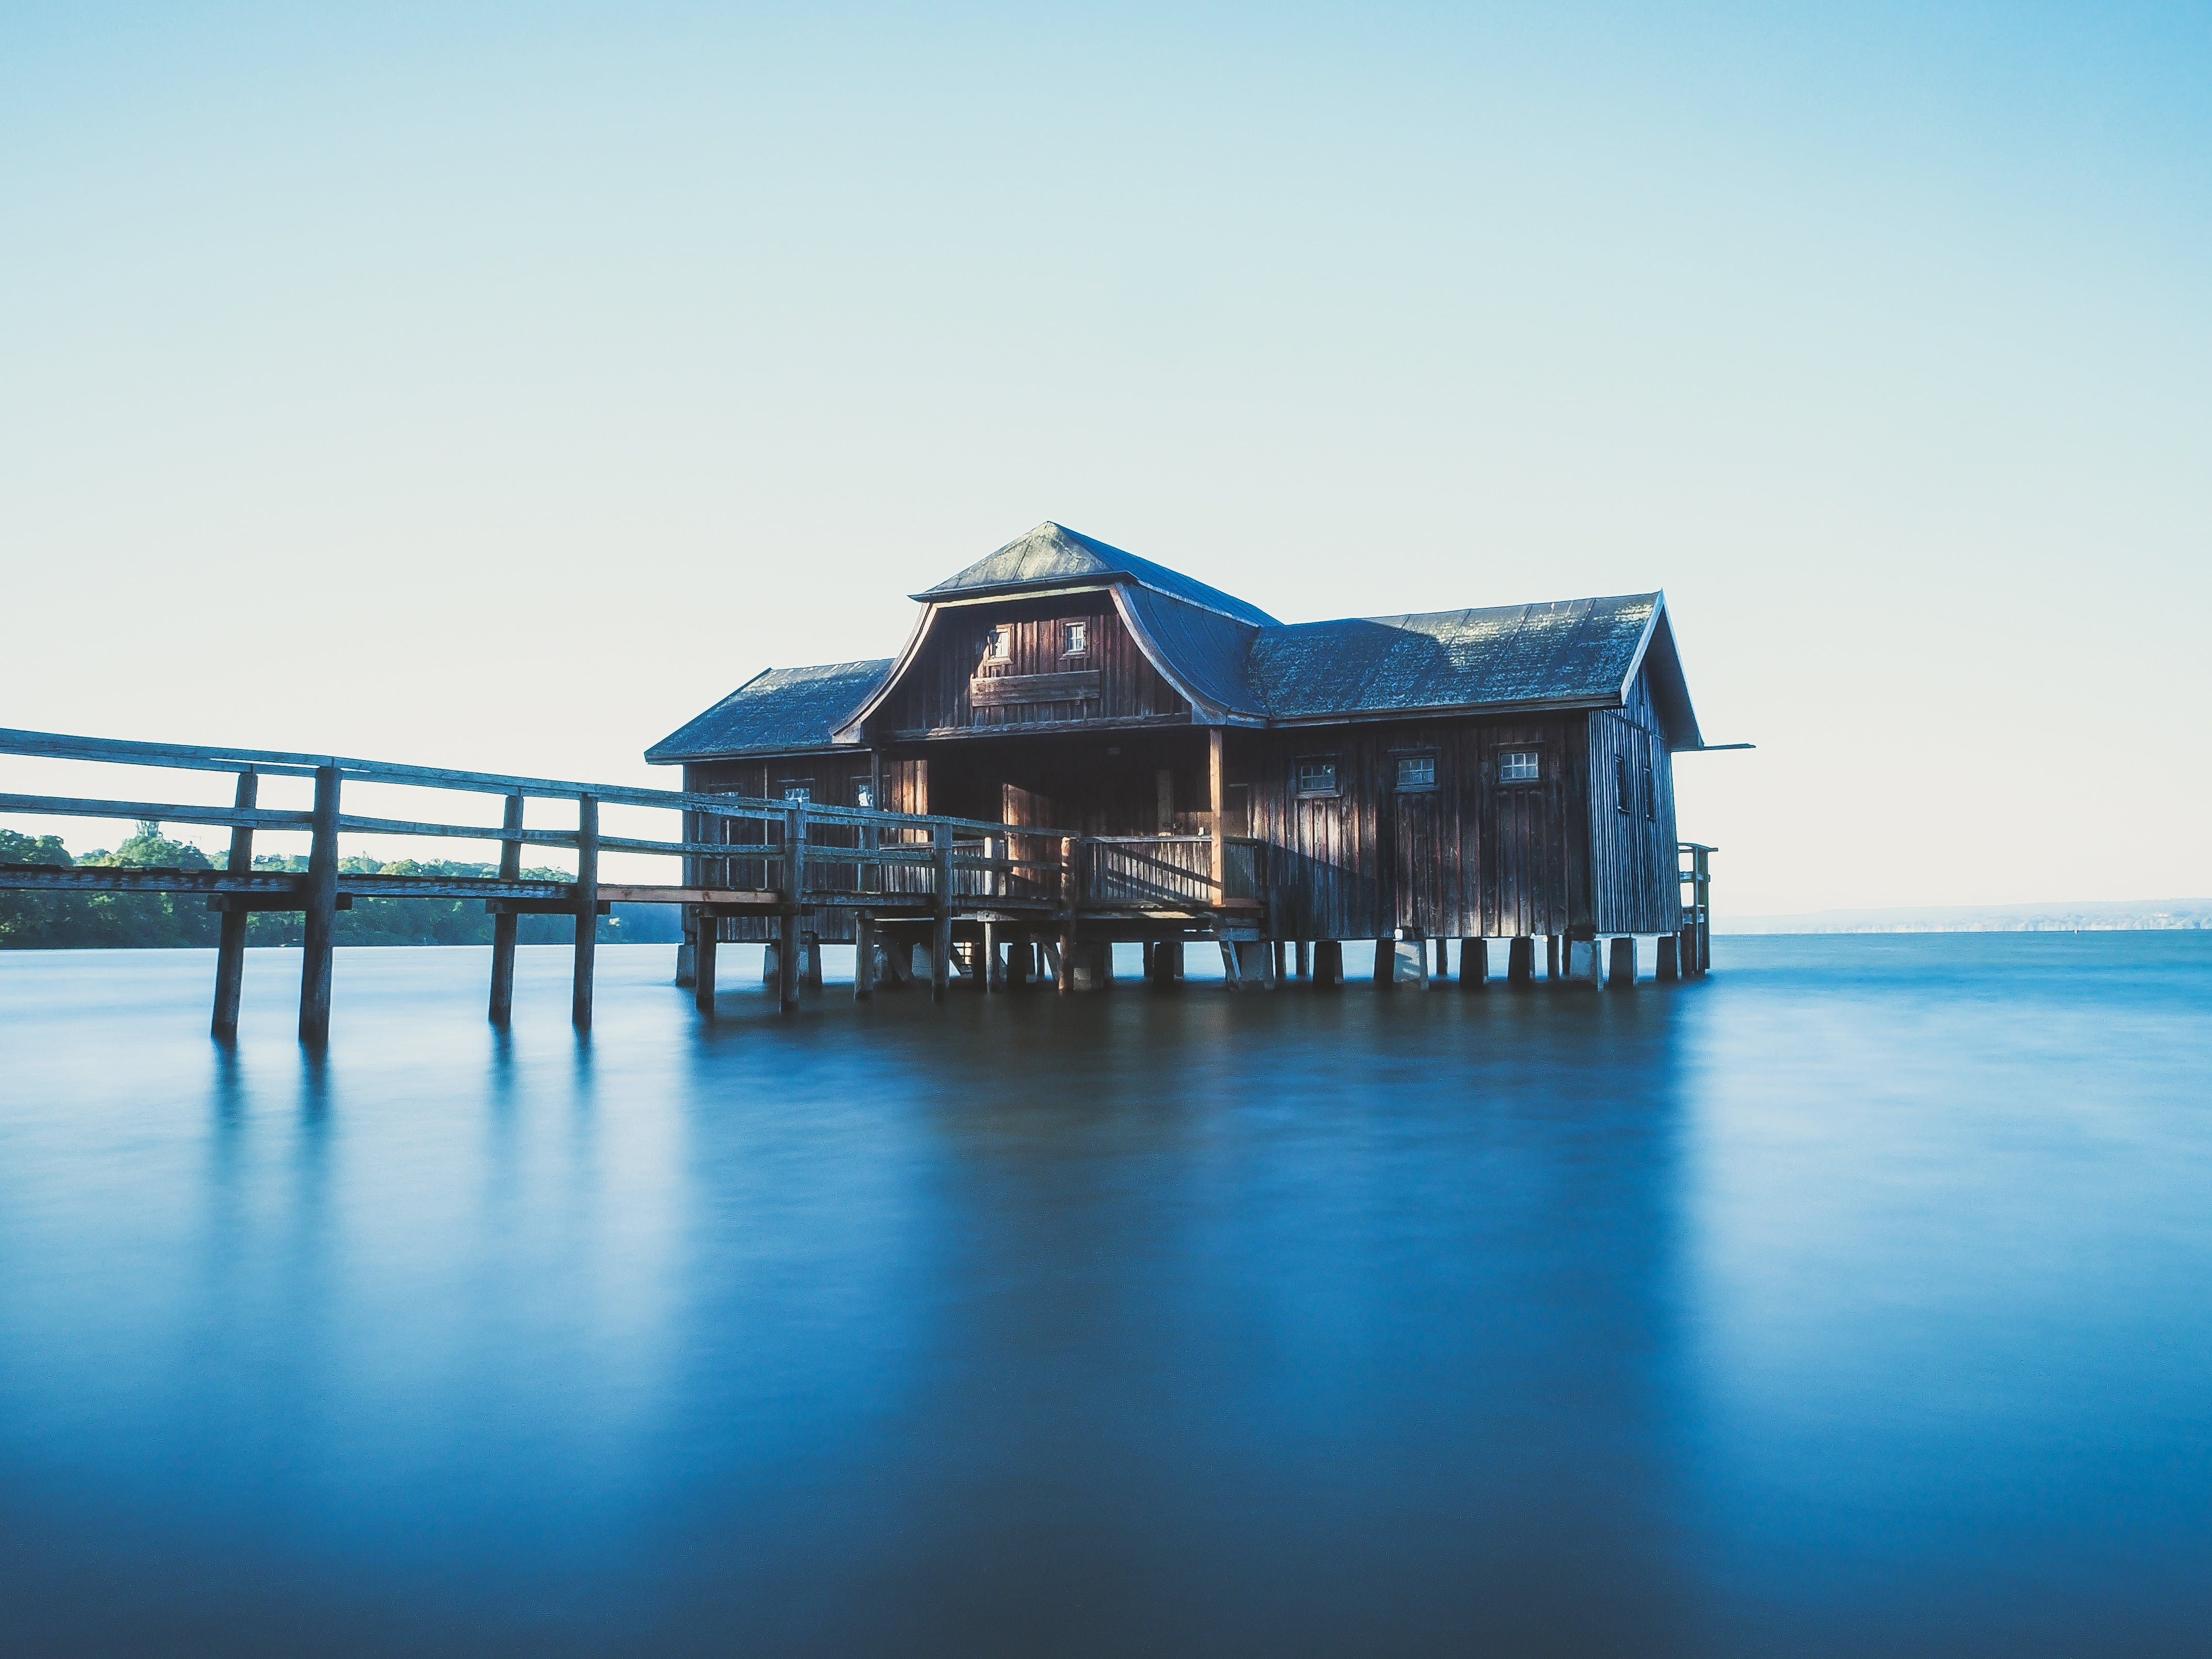 Brown Wooden House on Body of Water With Dock